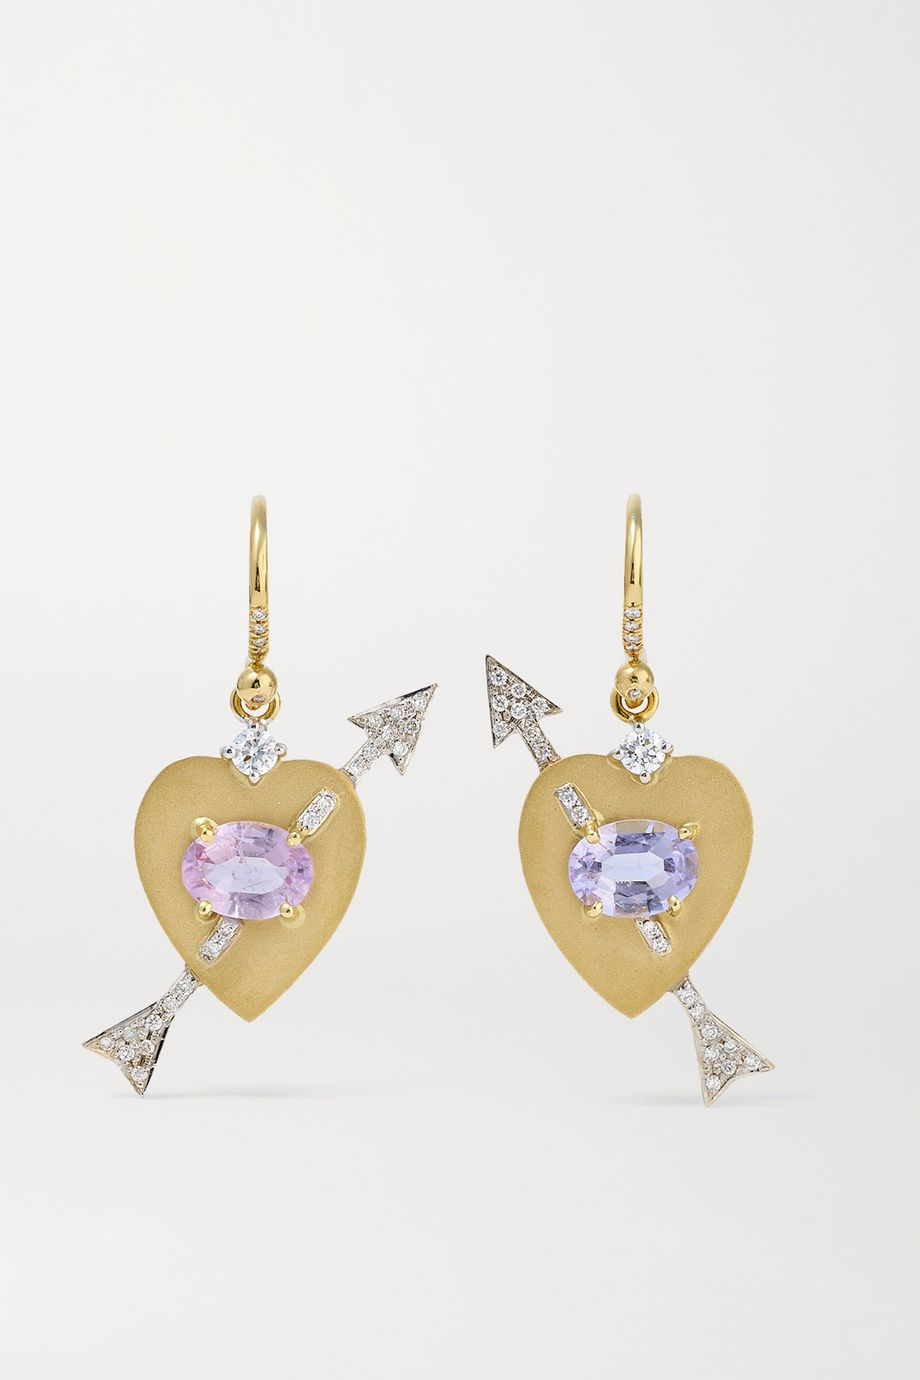 Irene Neuwirth True Love 18-karat yellow and white gold, tourmaline and diamond earrings